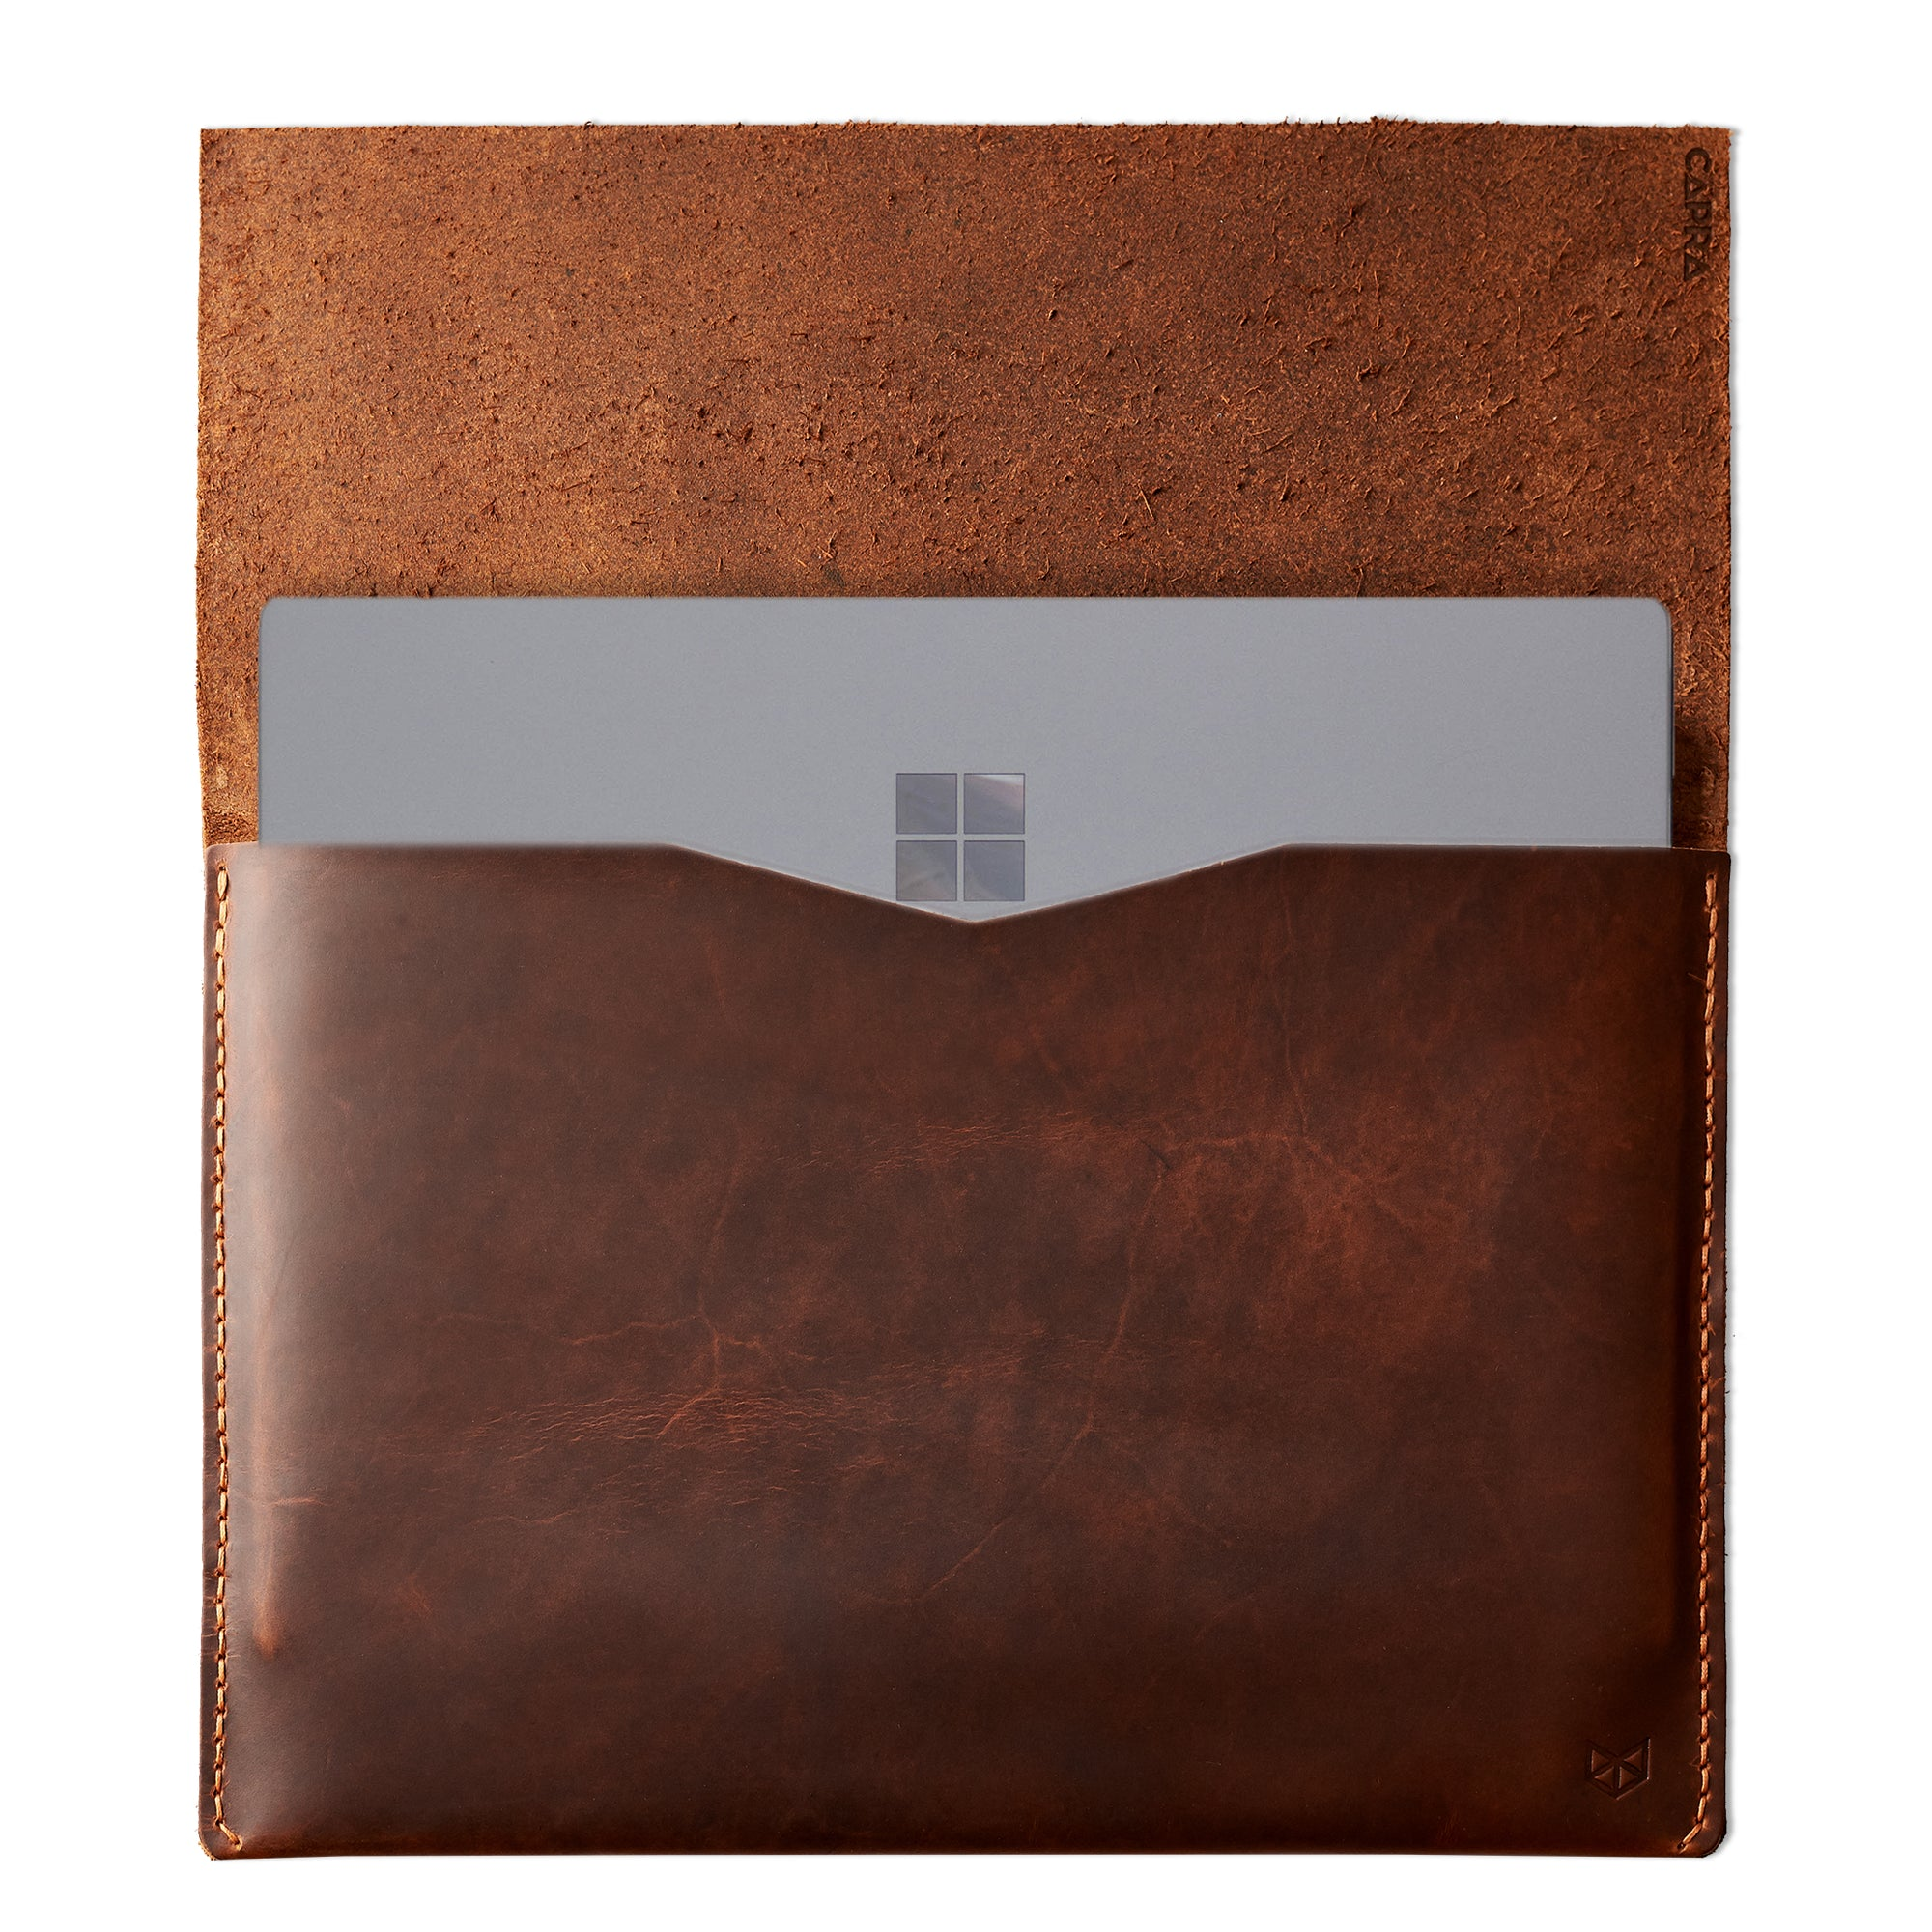 Tan brown leather Macbook pro touch bar sleeve. Designer unique mens cases. Hand stitched Macbook Pro sleeve